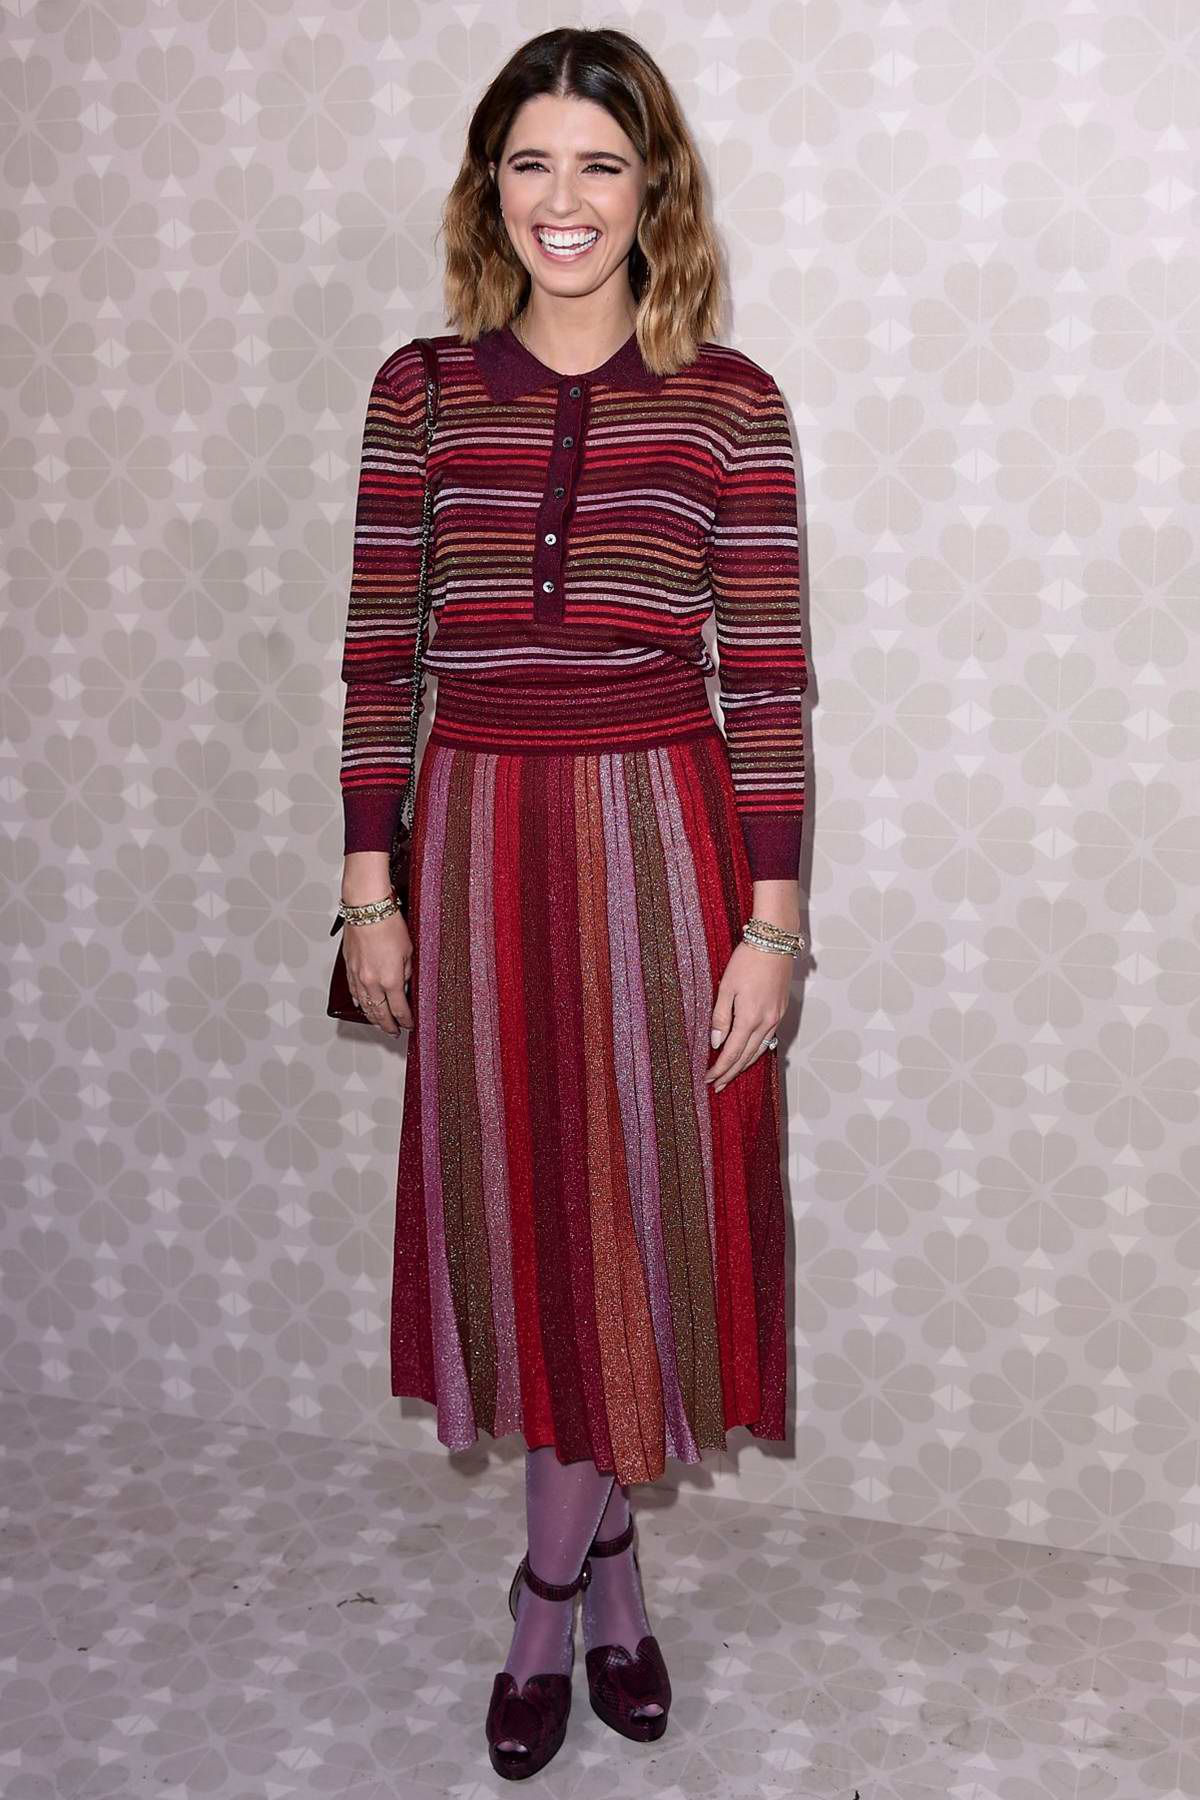 Katherine Schwarzenegger attends Kate Spade Fashion Show during New York Fashion Week in New York City